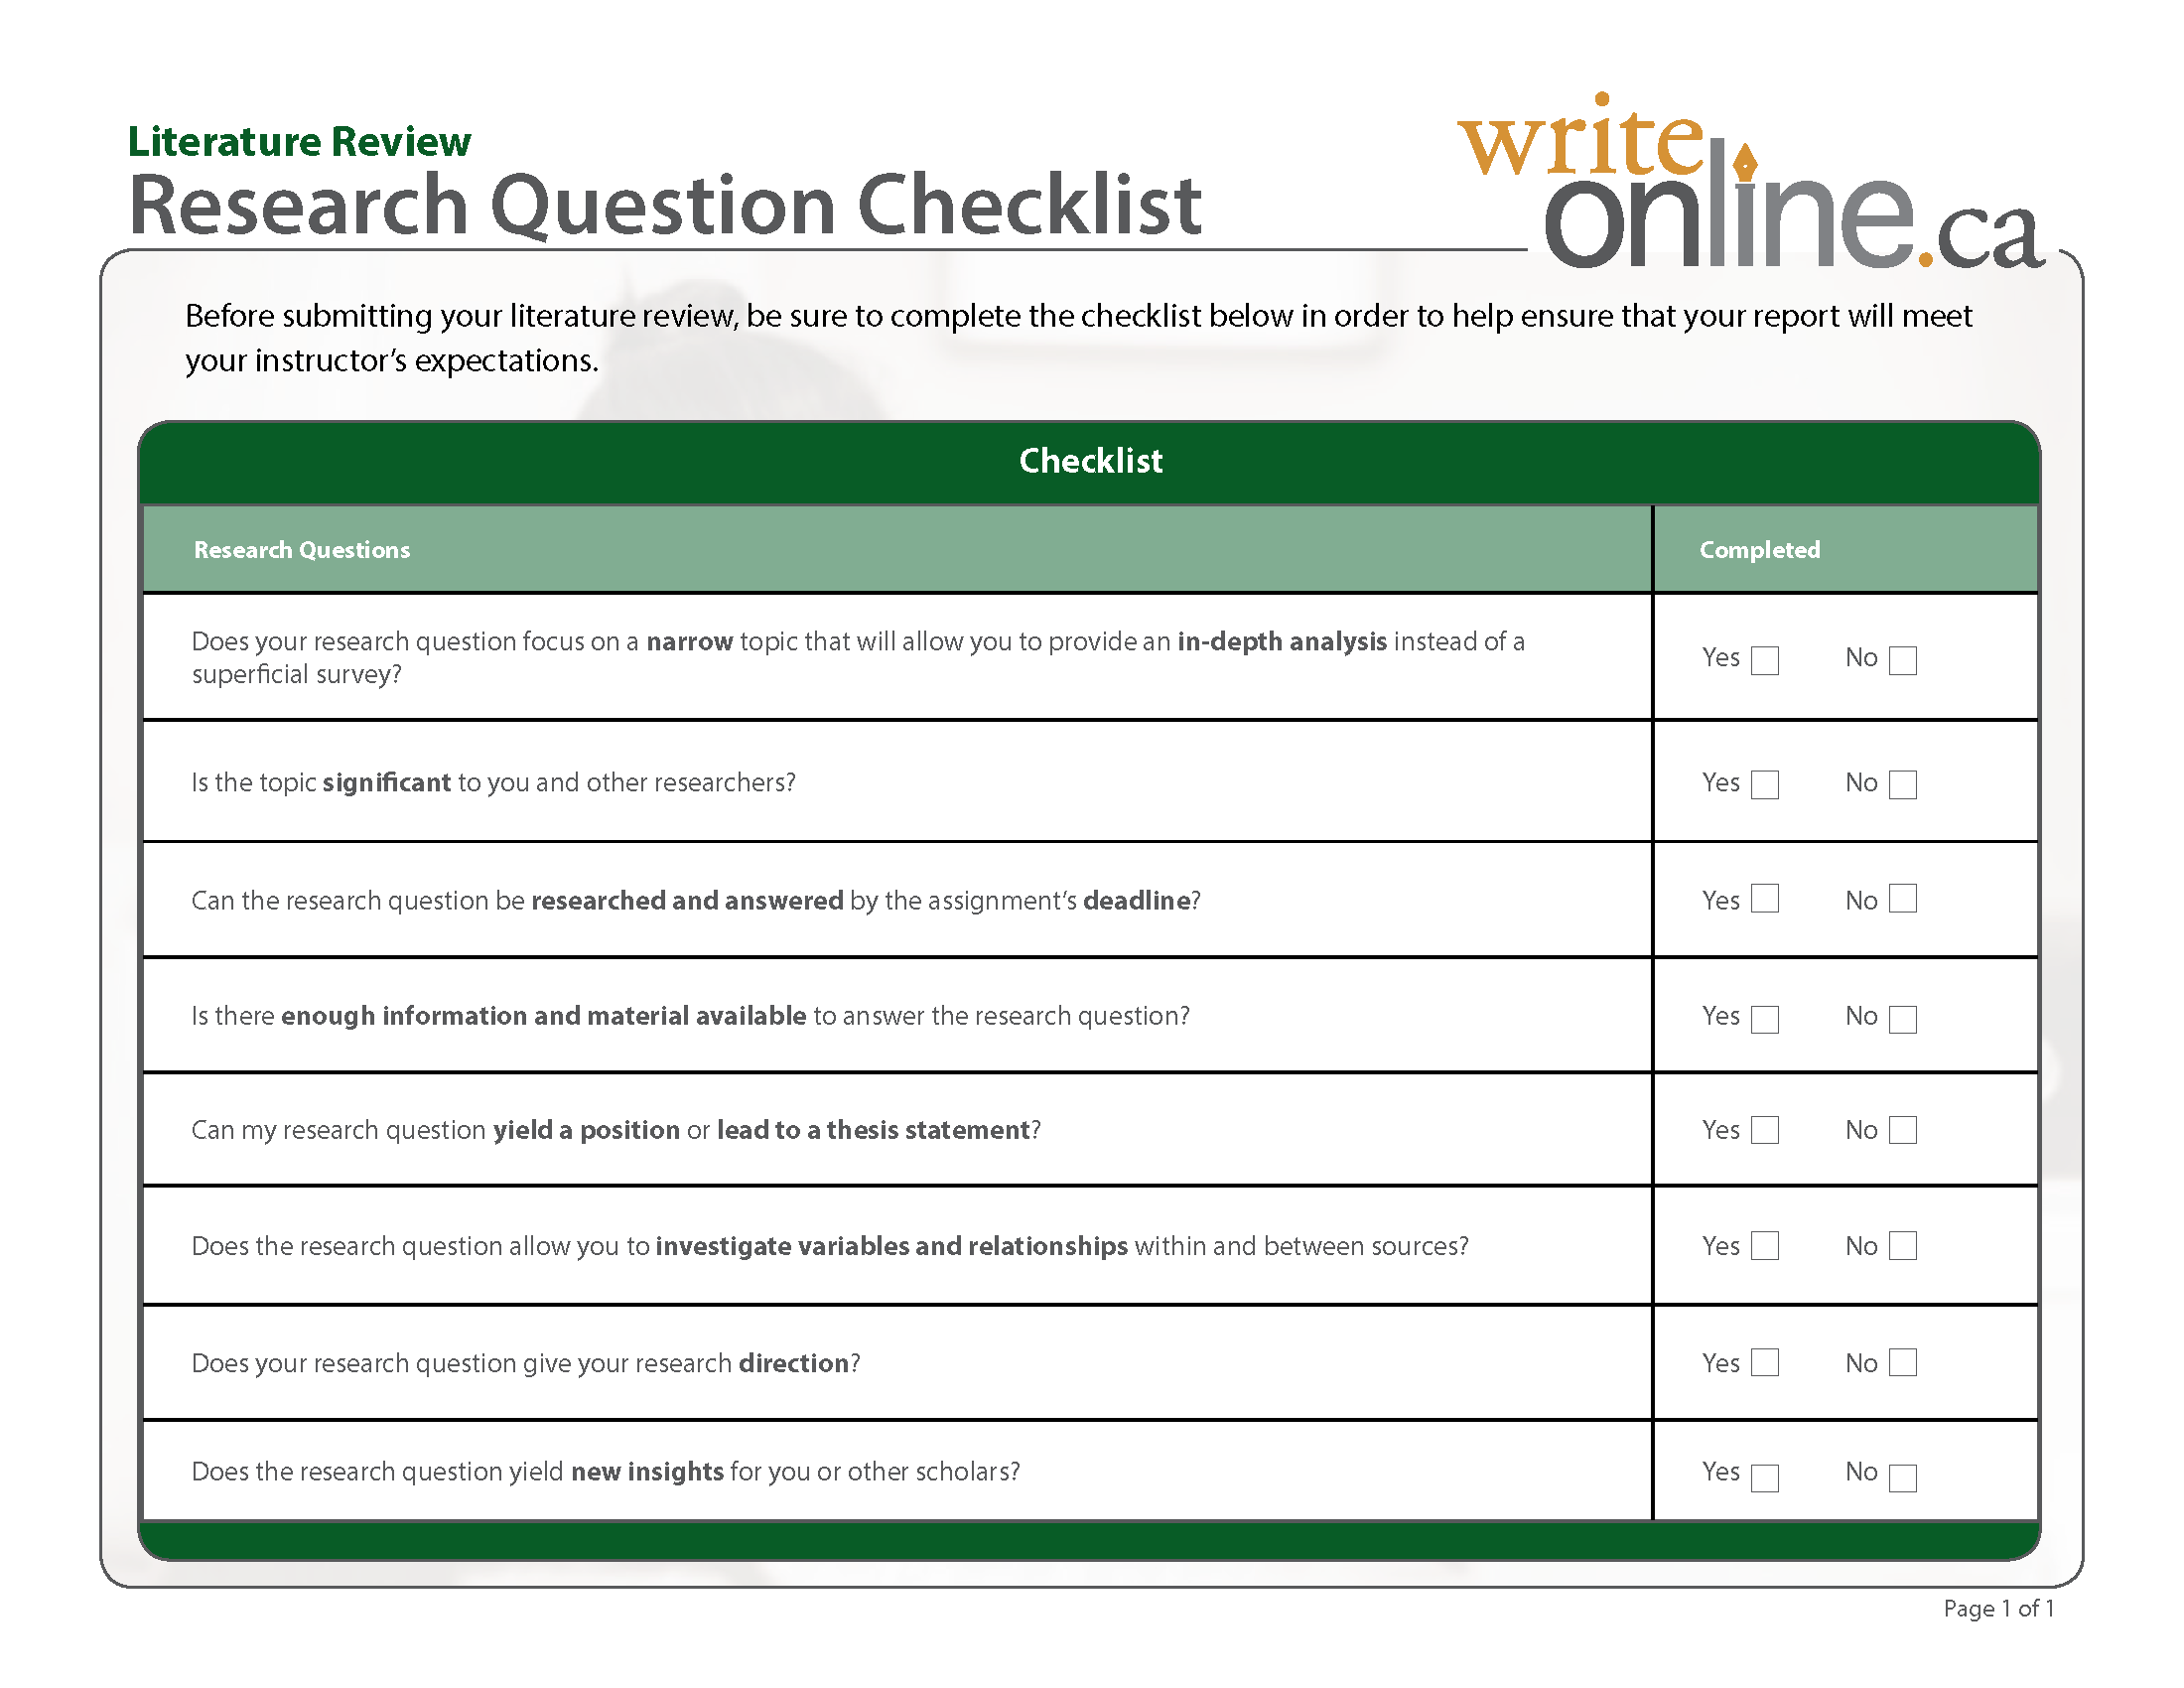 005 Literature Review Research Questions Checklist Study